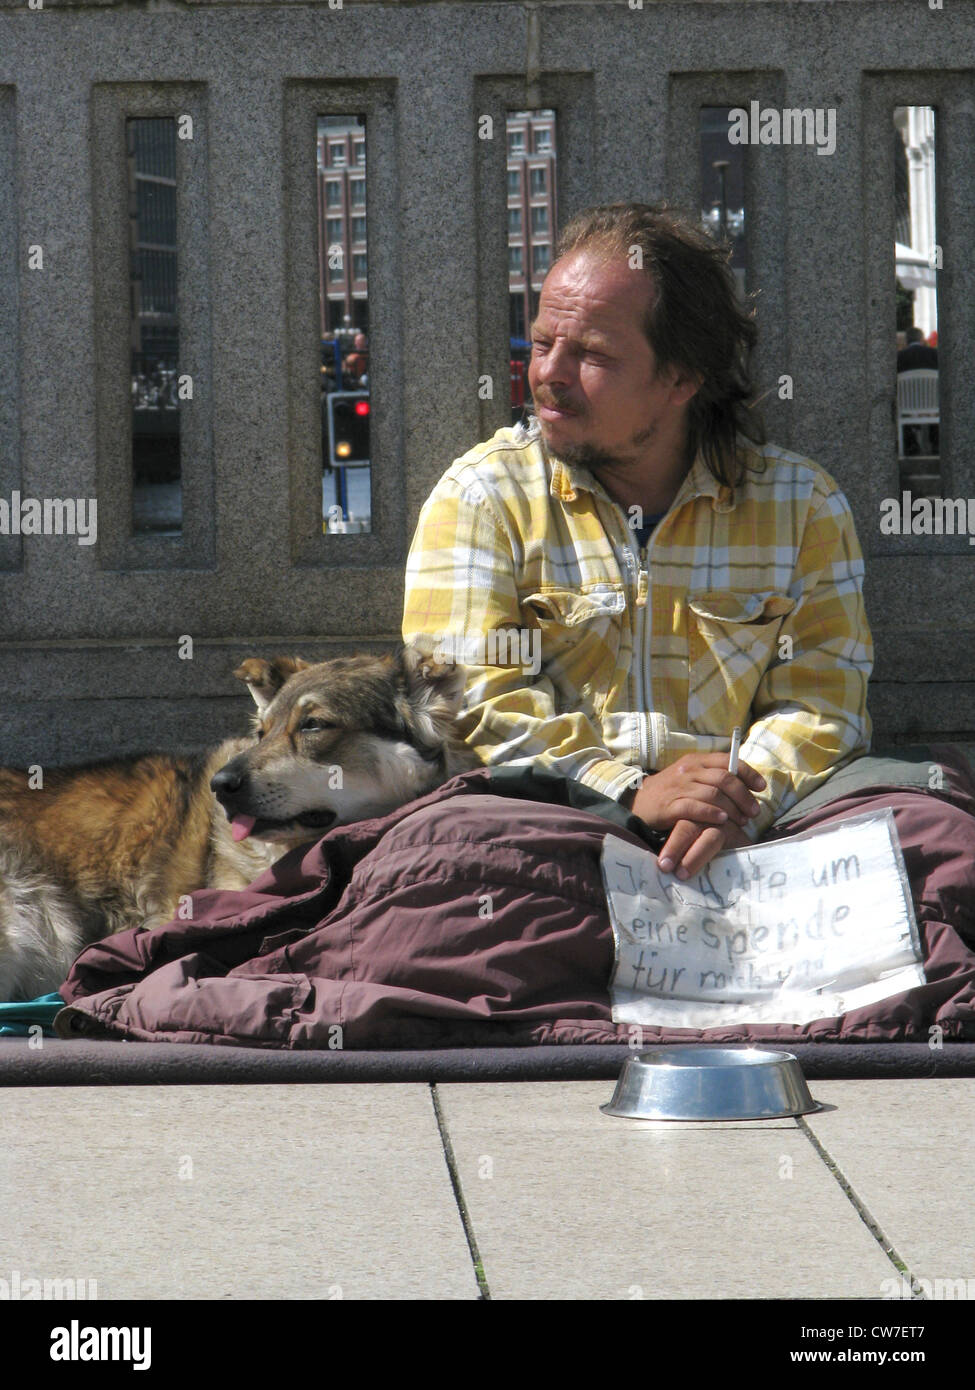 Homeless person with dog is asking for money on a bridge over the Alster in the city of Hamburg, Germany, Hamburg - Stock Image